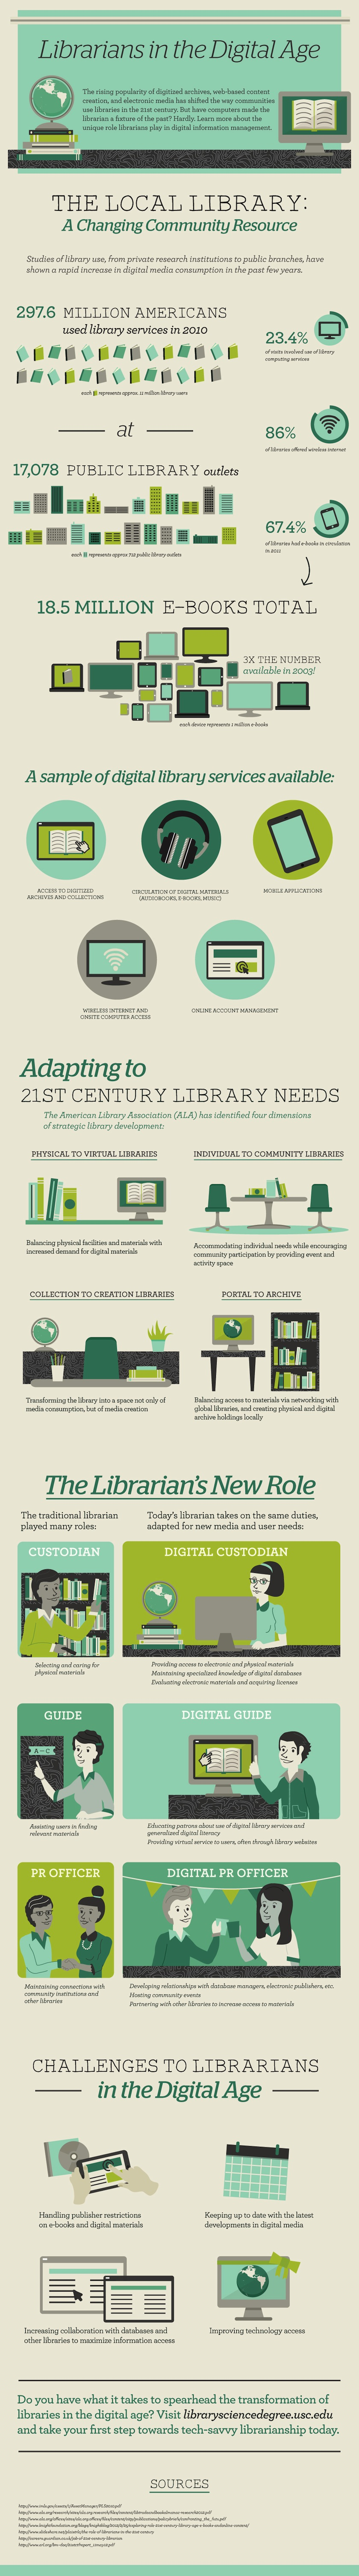 Librarians-digital-age-infographic